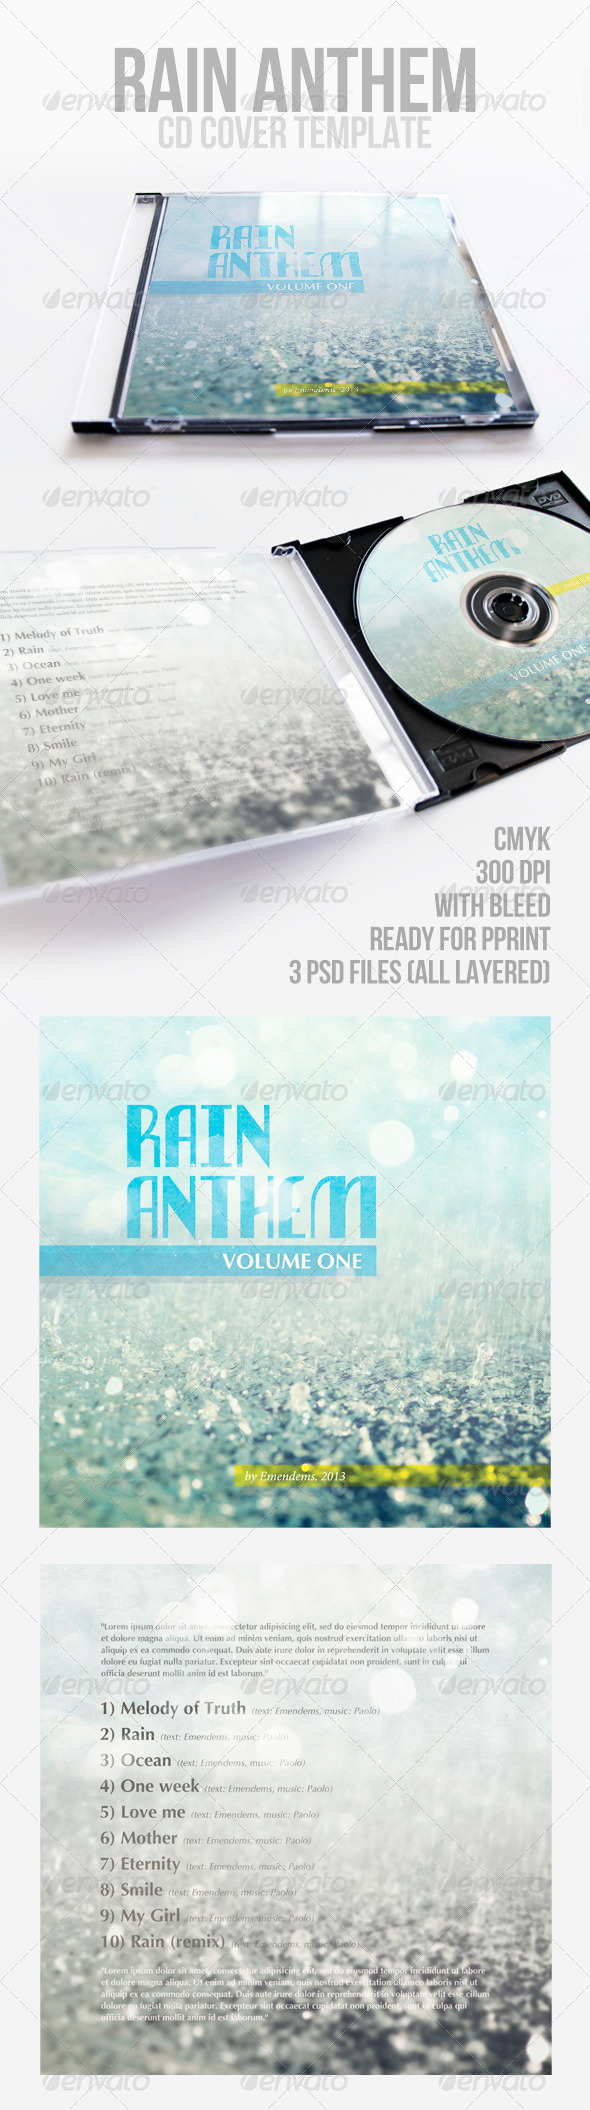 Rain Anthem CD Cover Template - CD & DVD artwork Print Templates